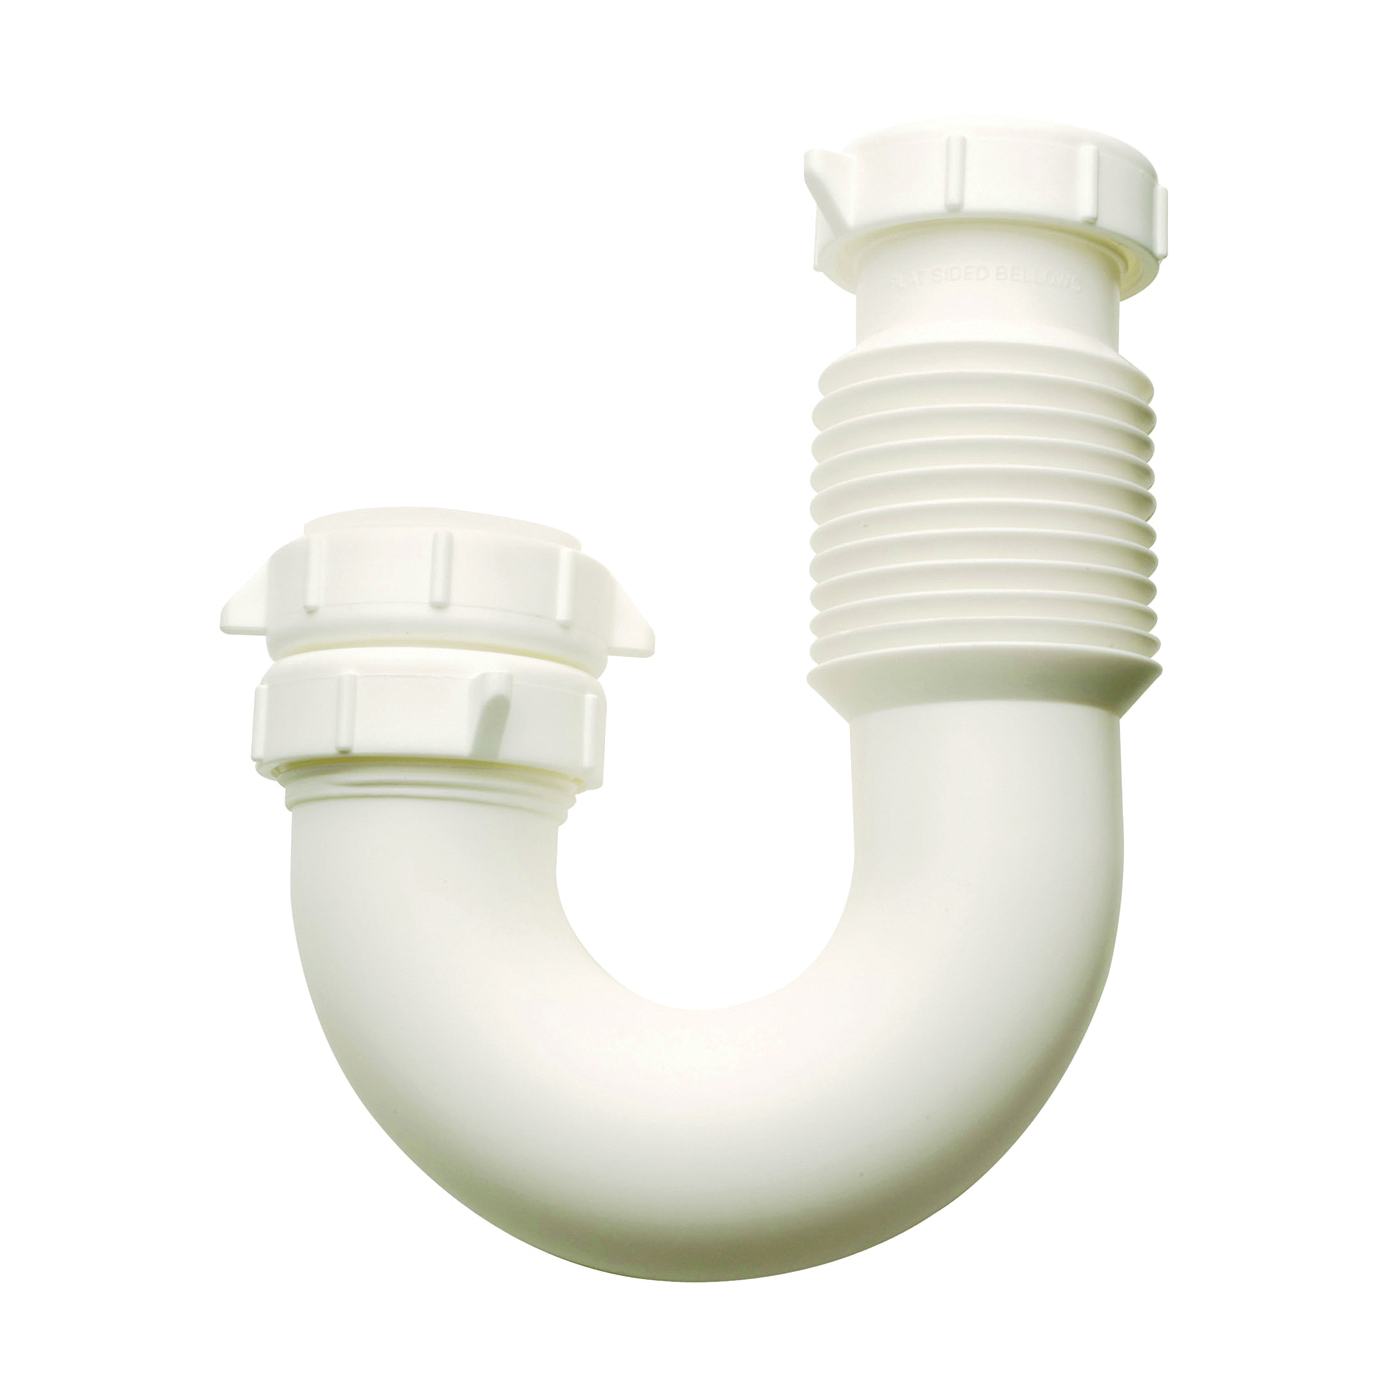 Picture of Plumb Pak PP812-55 J-bend, 1-1/2 x 1-1/2 in, Slip Joint, Plastic, White